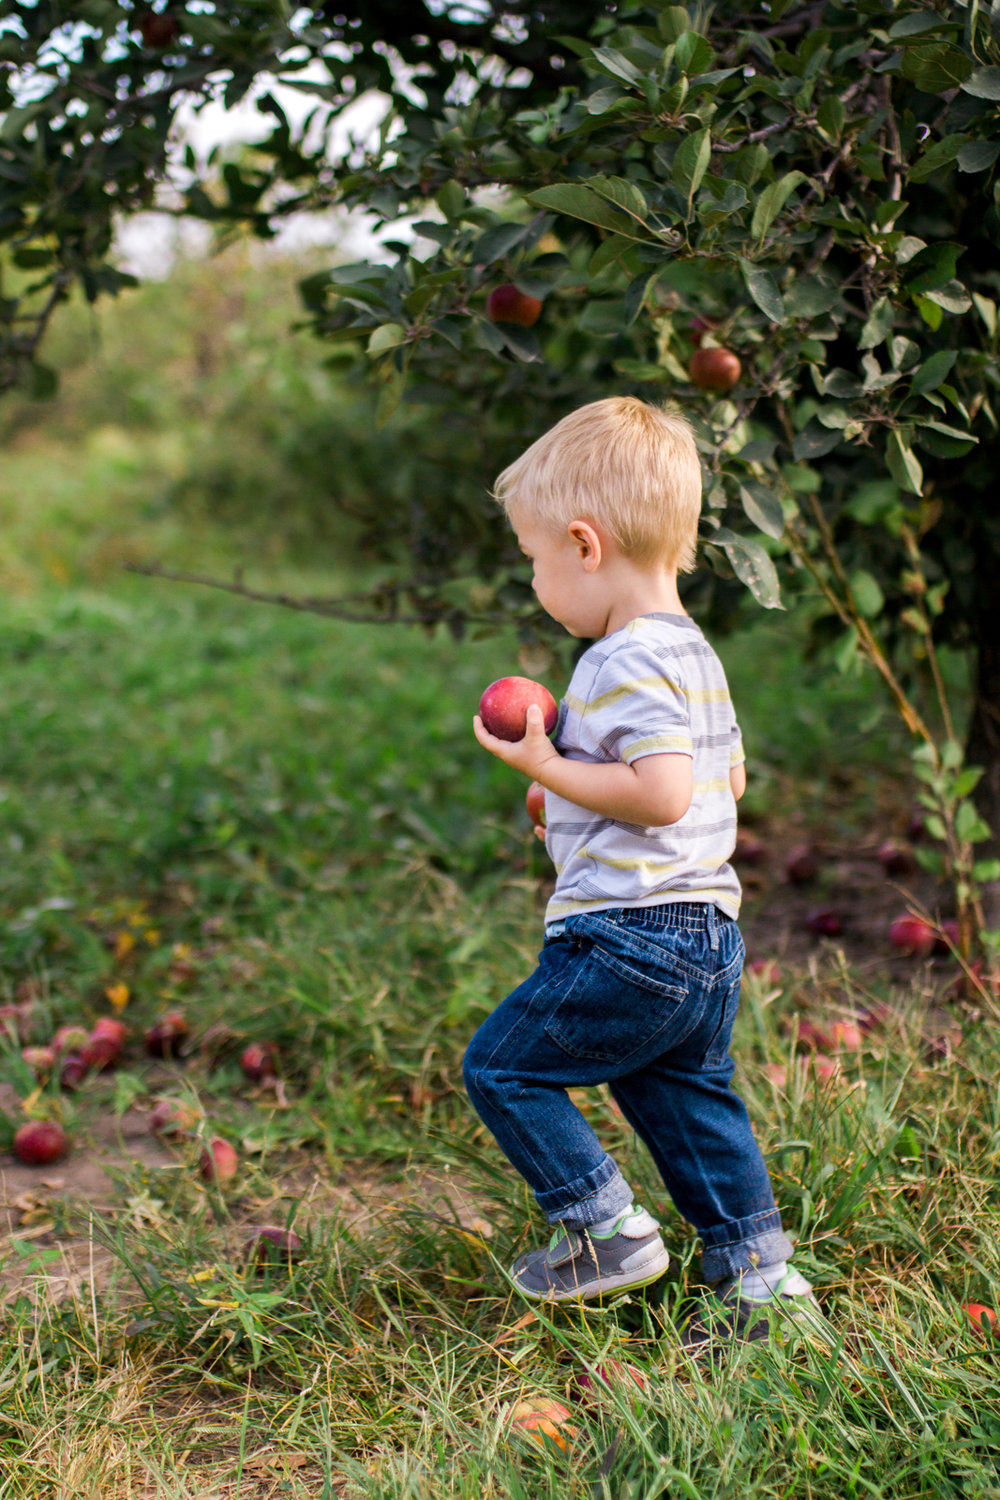 Rebecca Clair Photography, Kansas City lifestyle photographer, apple picking photo session, apple orchard photos, Kansas City family photographer, boy carrying apples